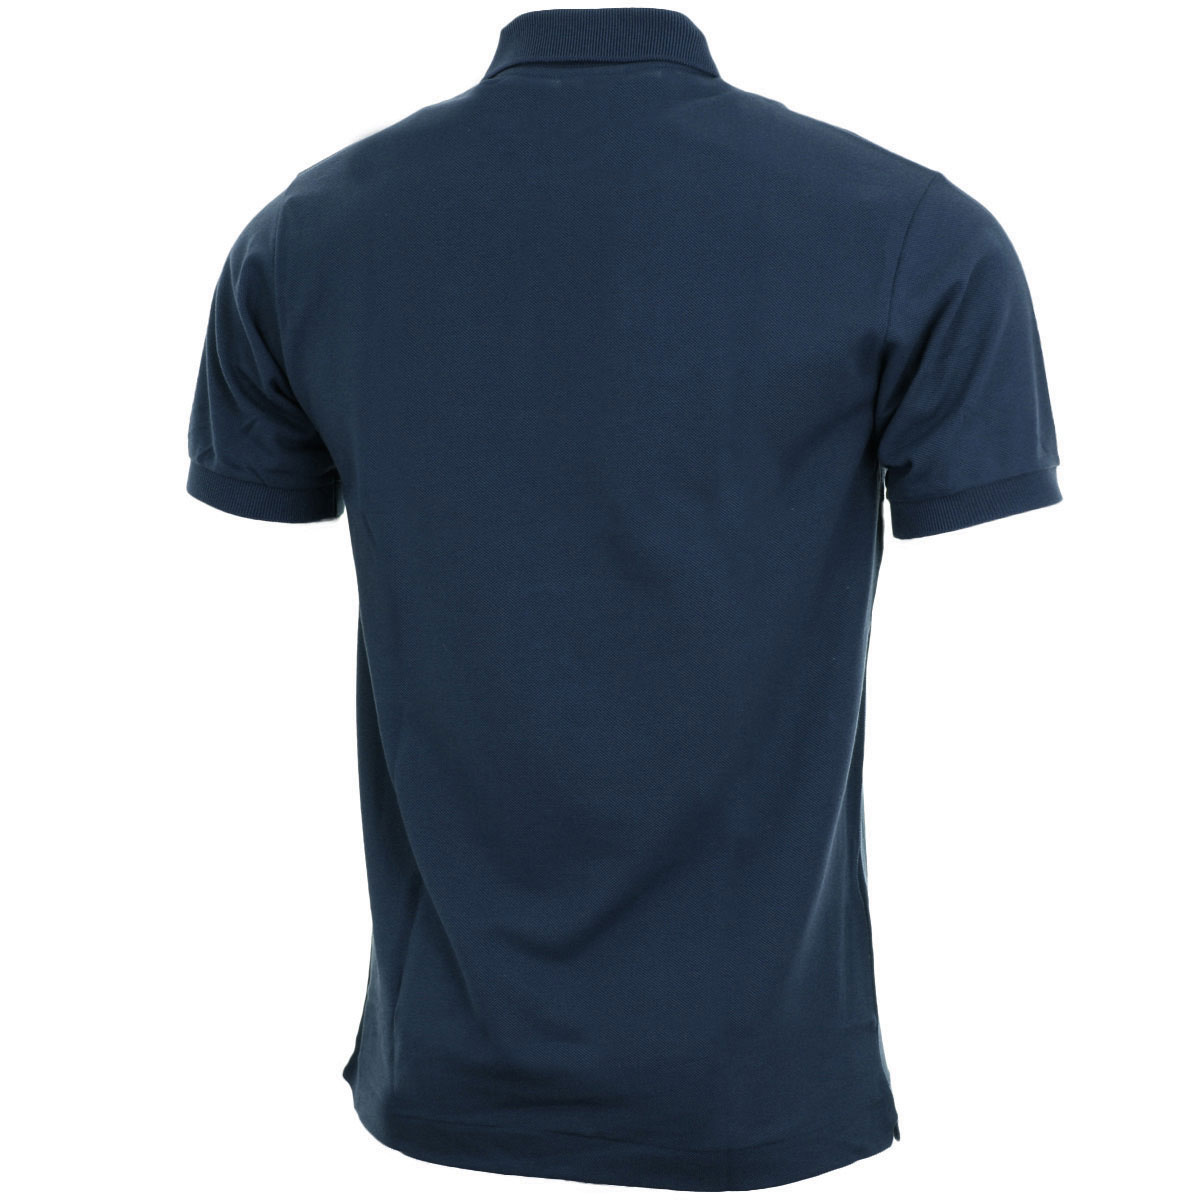 Lacoste-Mens-Classic-Cotton-L1212-Short-Sleeve-Polo-Shirt-31-OFF-RRP thumbnail 44